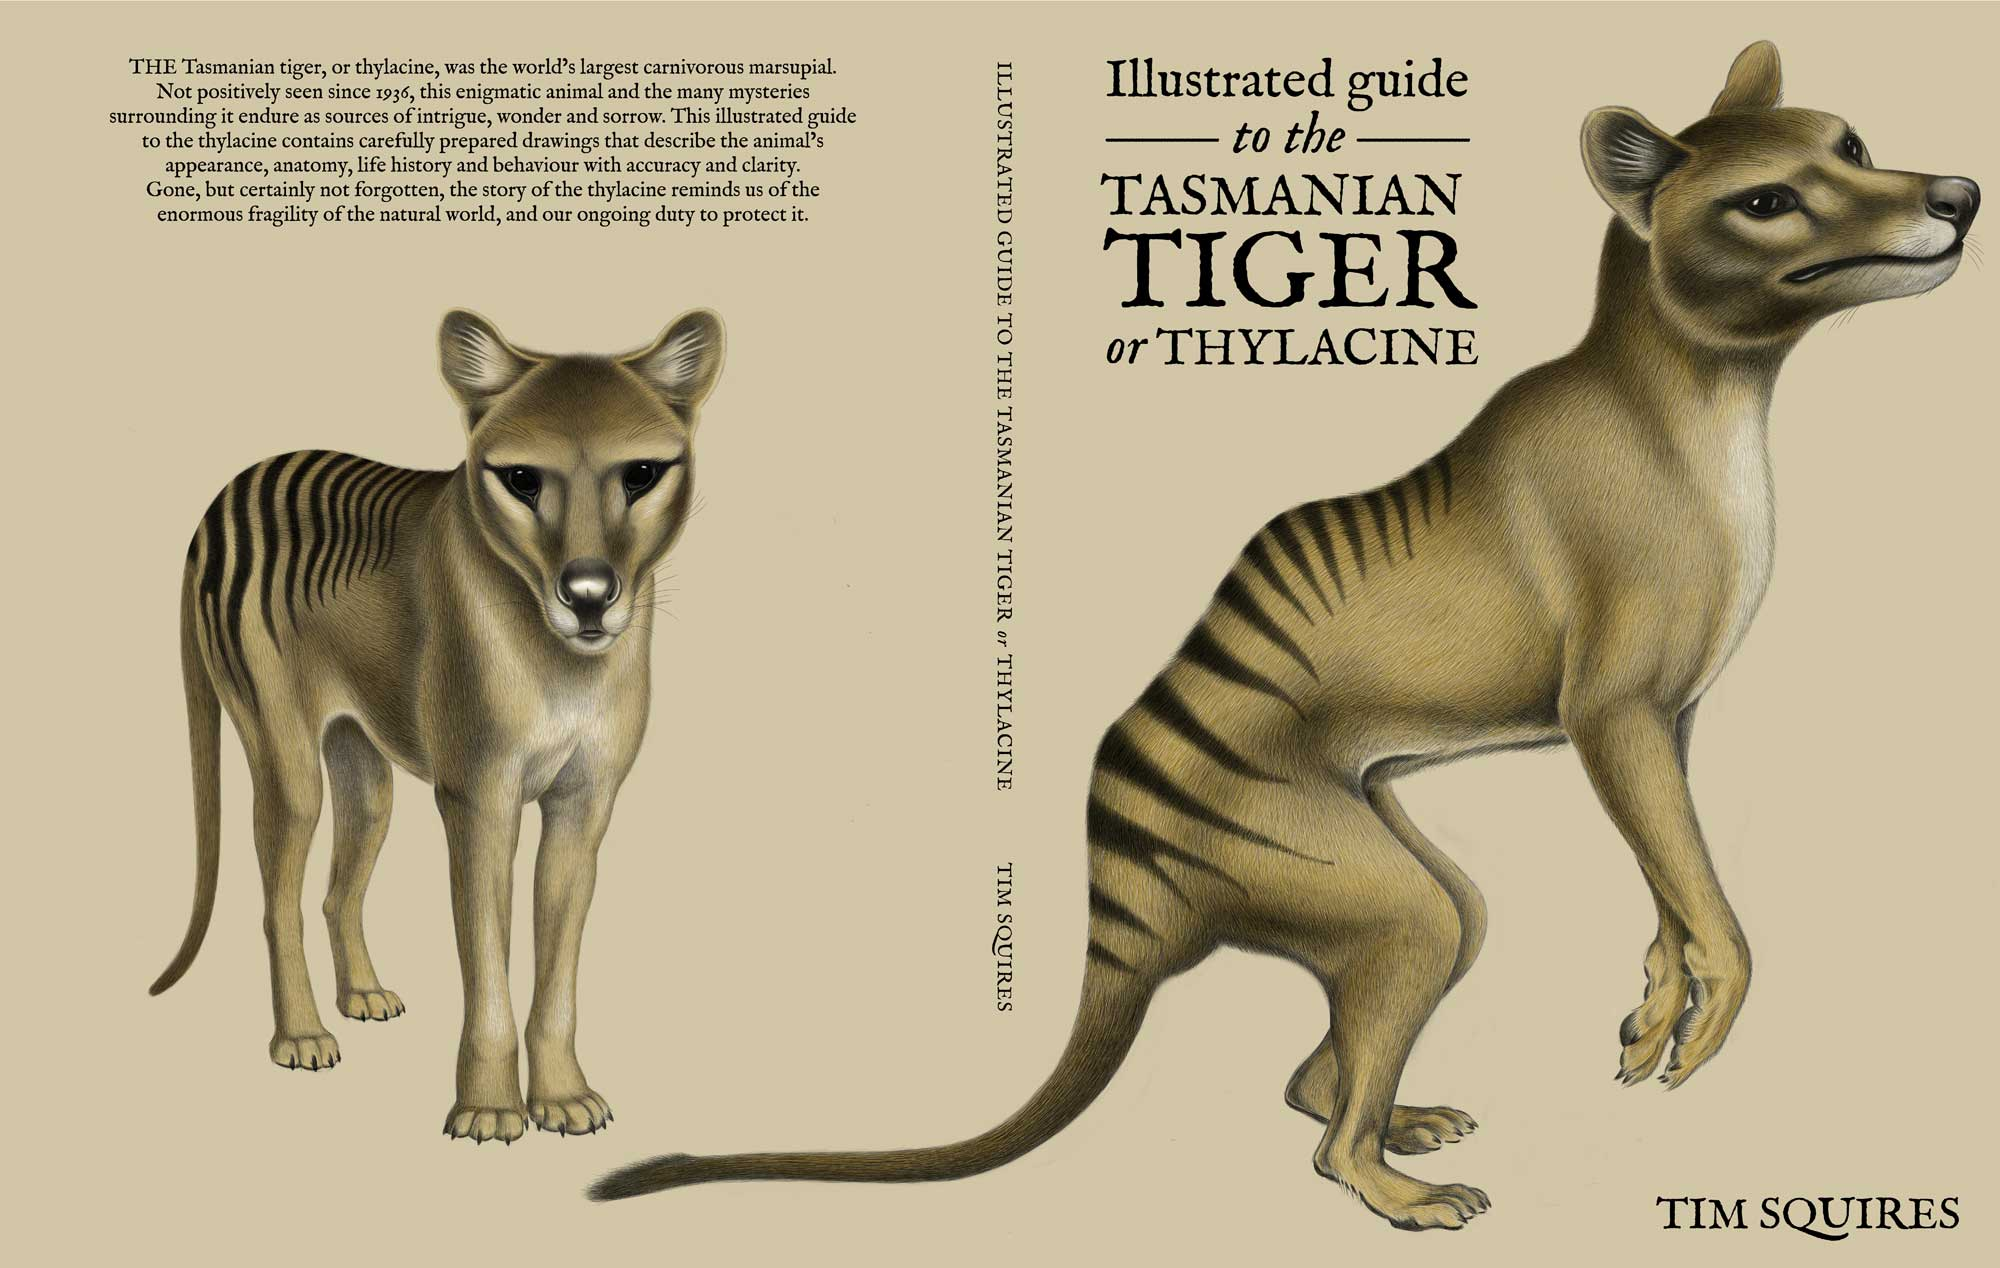 Cover art by Tim Squires for Illustrated Guide to the Tasmanian Tiger